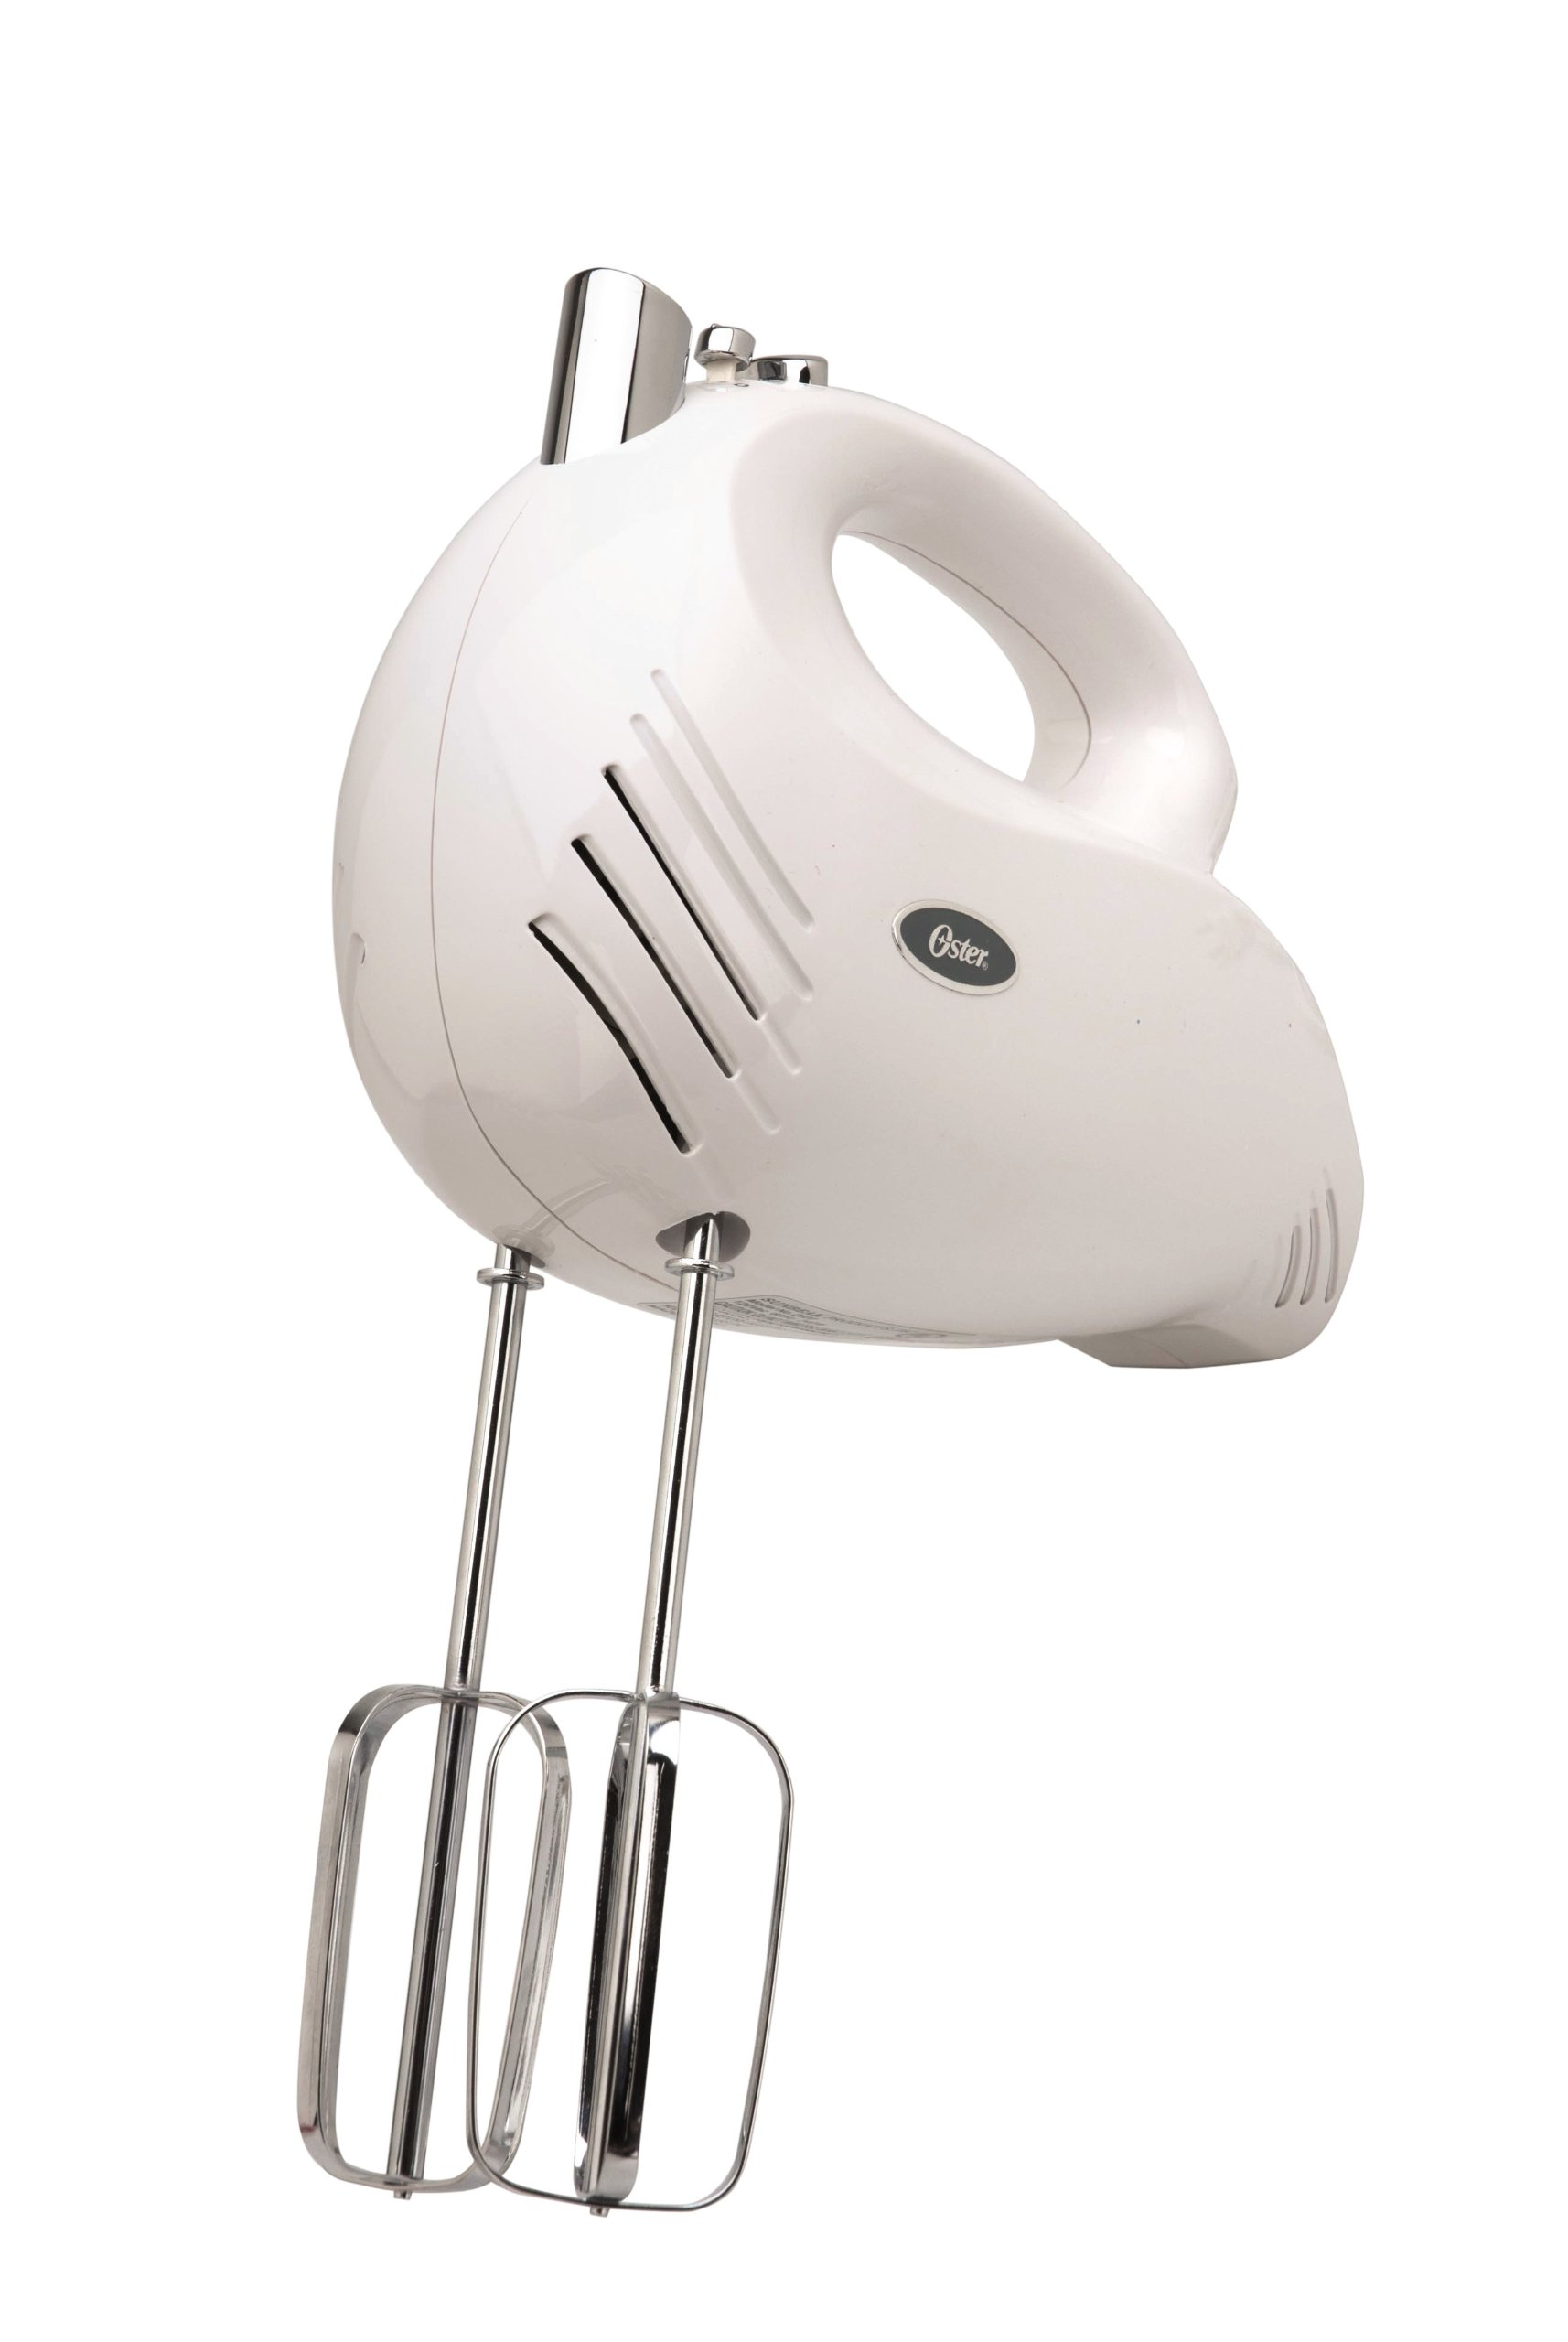 Oster 2500 Inspire 240-Watt 5-Speed Hand Mixer, White by Oster